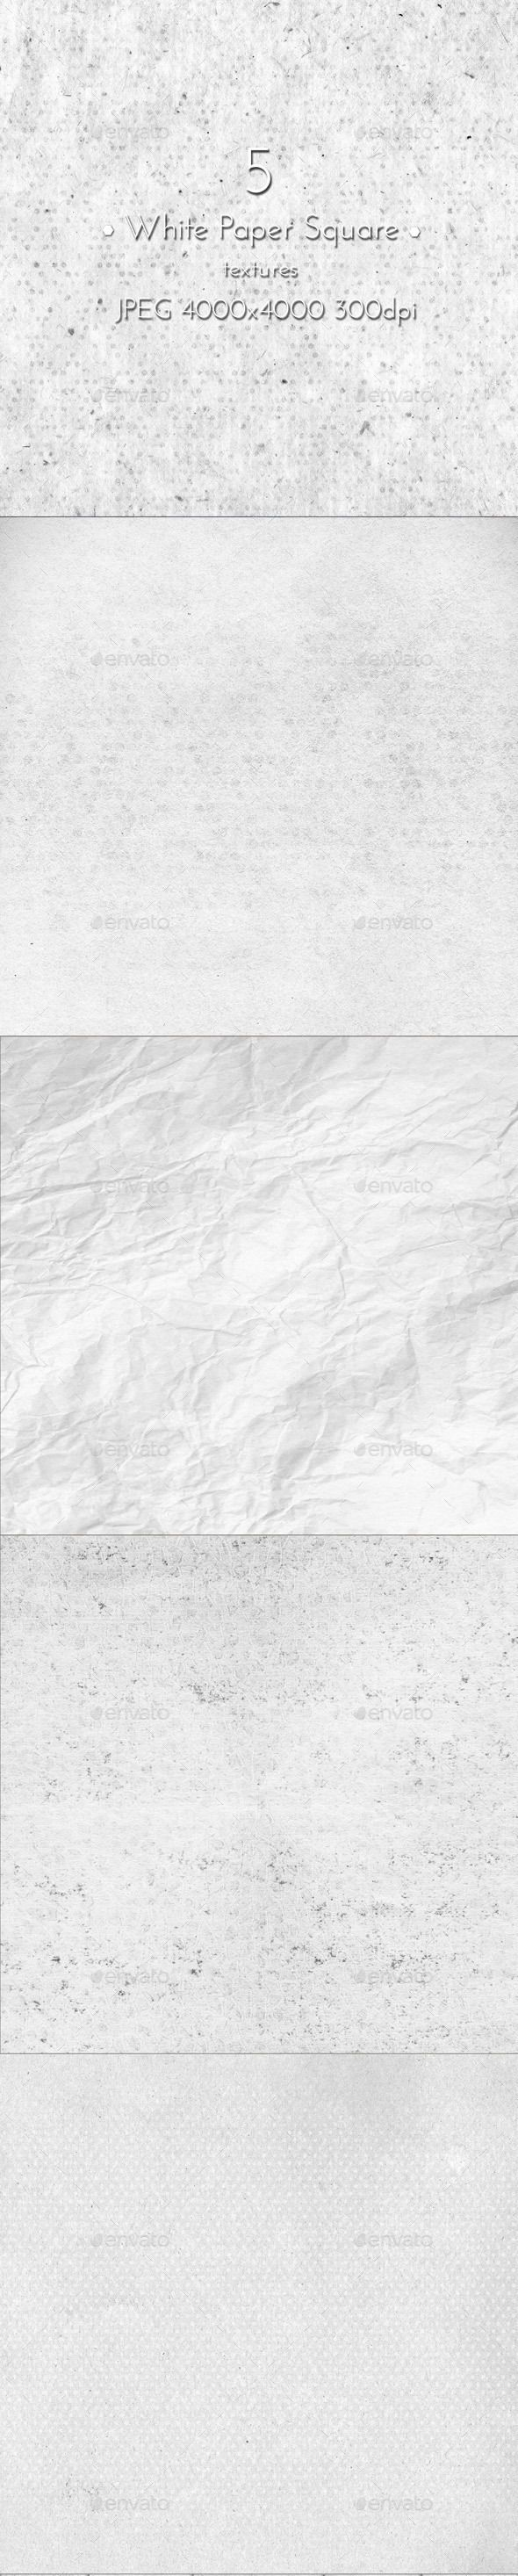 White Old Paper - Paper #Textures Download here: https://graphicriver.net/item/white-old-paper/19737724?ref=alena994